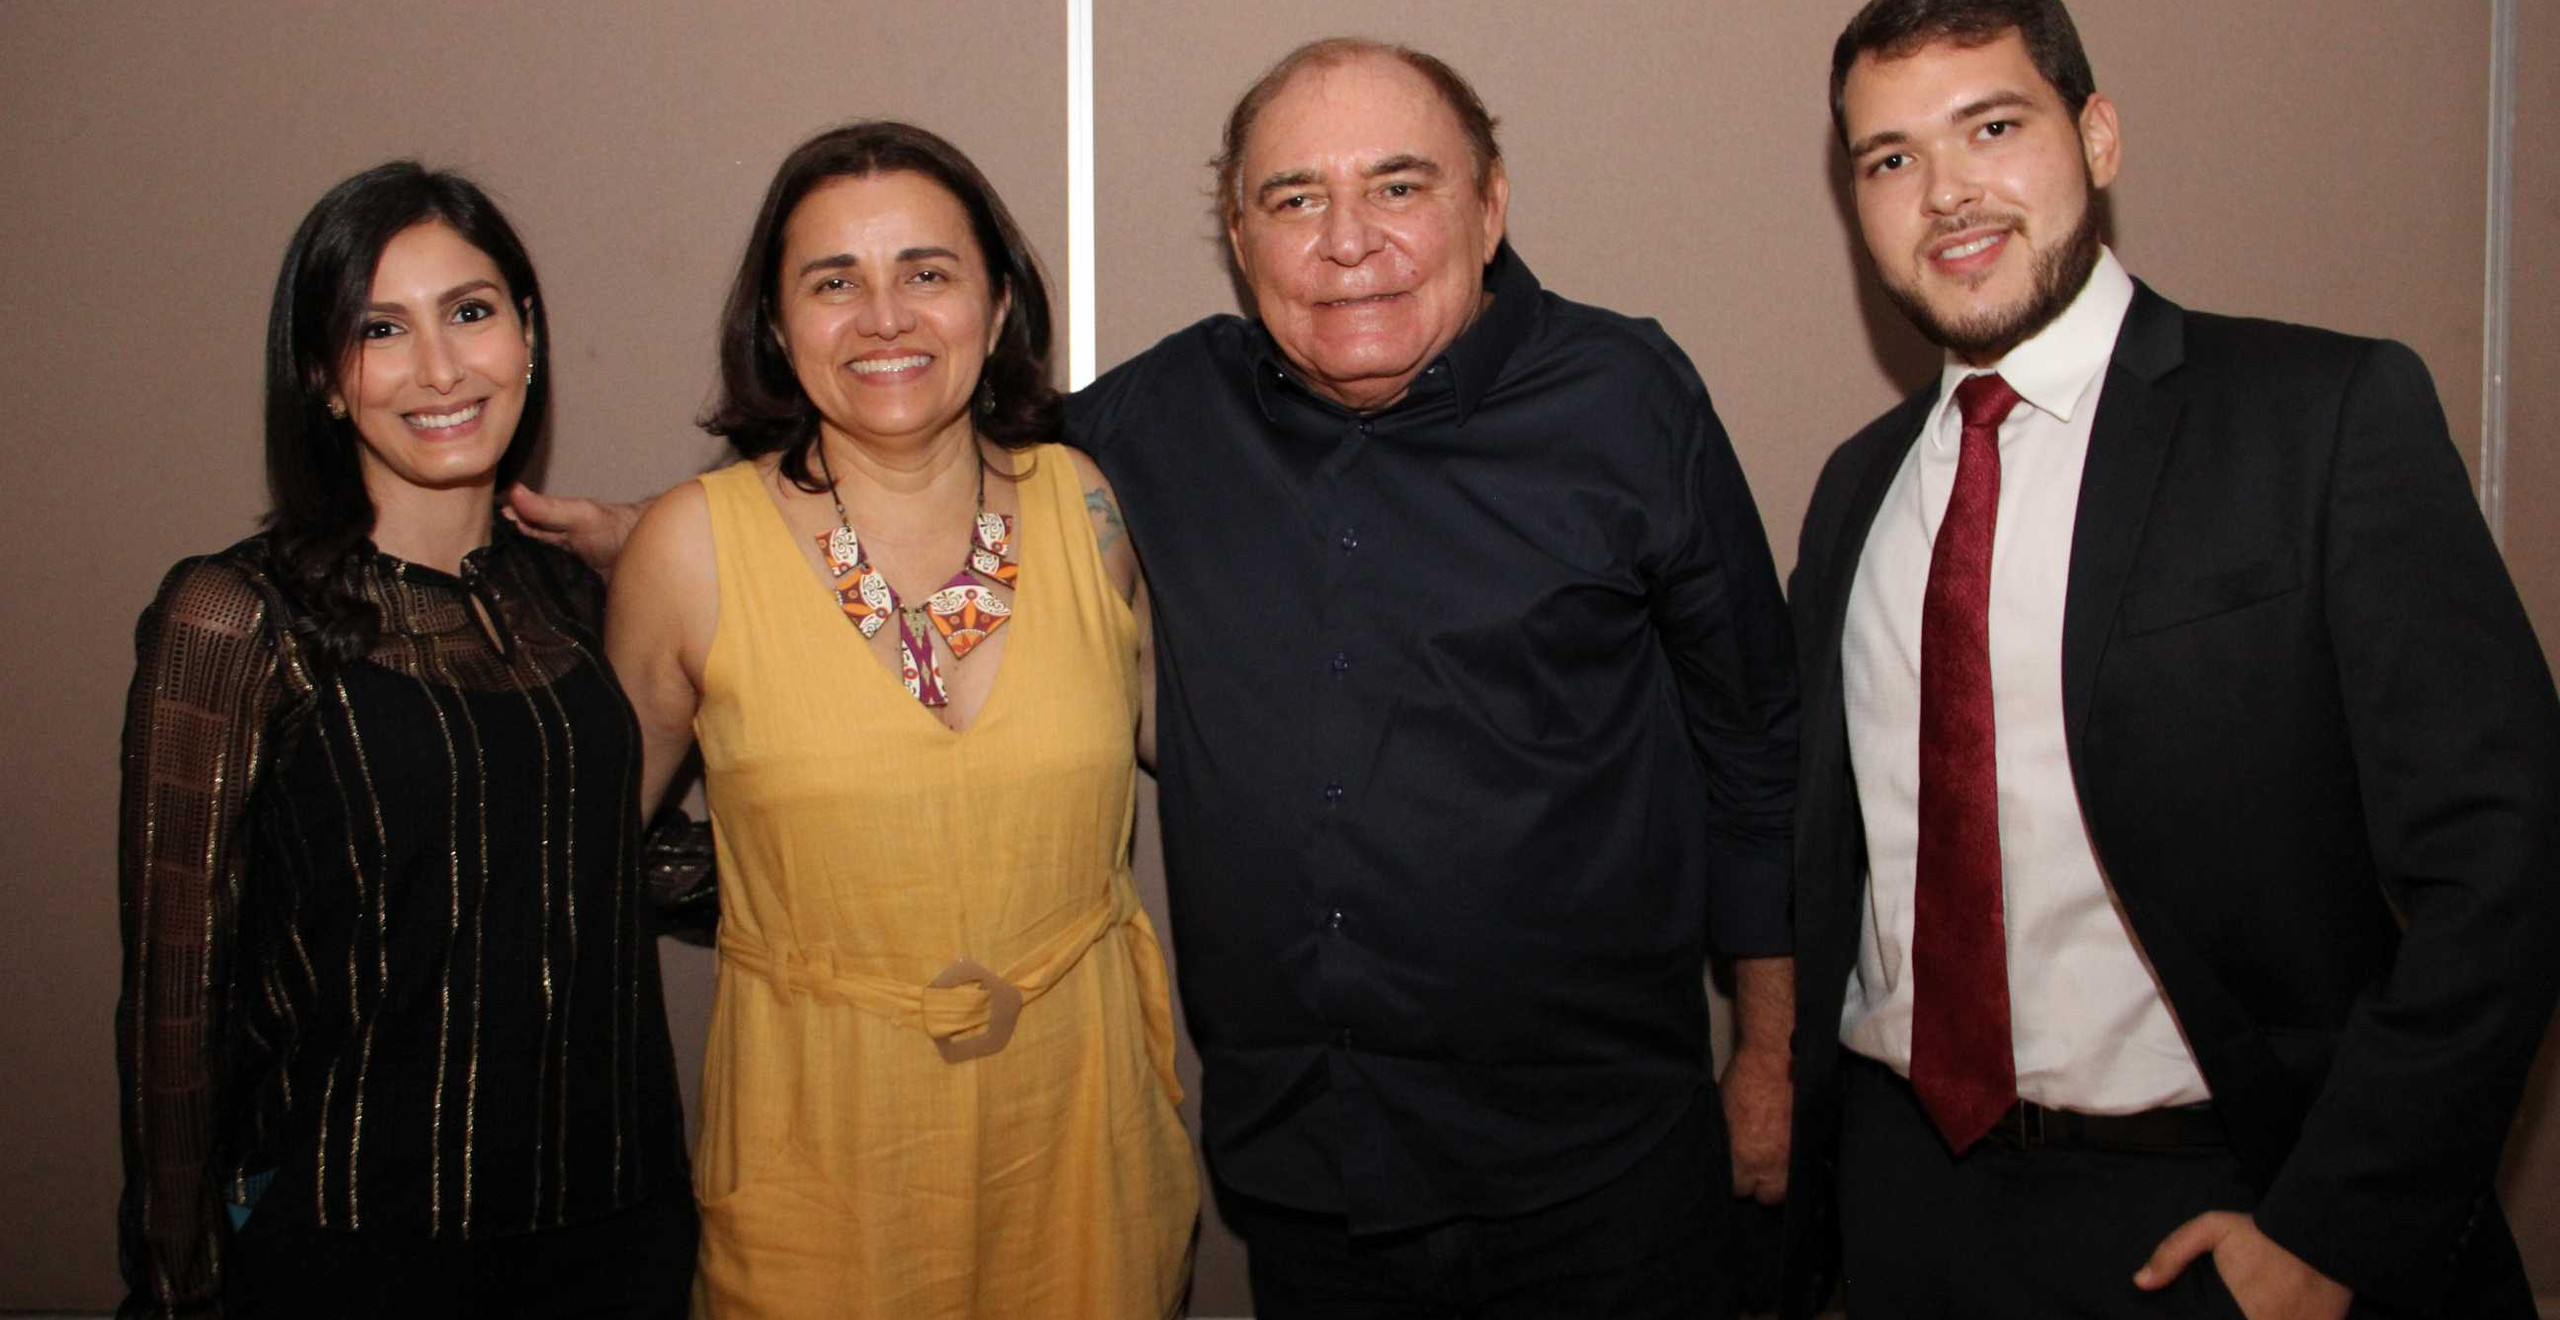 As Gerentes do Lacmar Viviane Lopes (Qualidade) e Suzana Viana (Adm) com o Pres. do Gruo Mercúrio Paulo Braid e o Dir. do Lacmar Vinícius Braid.